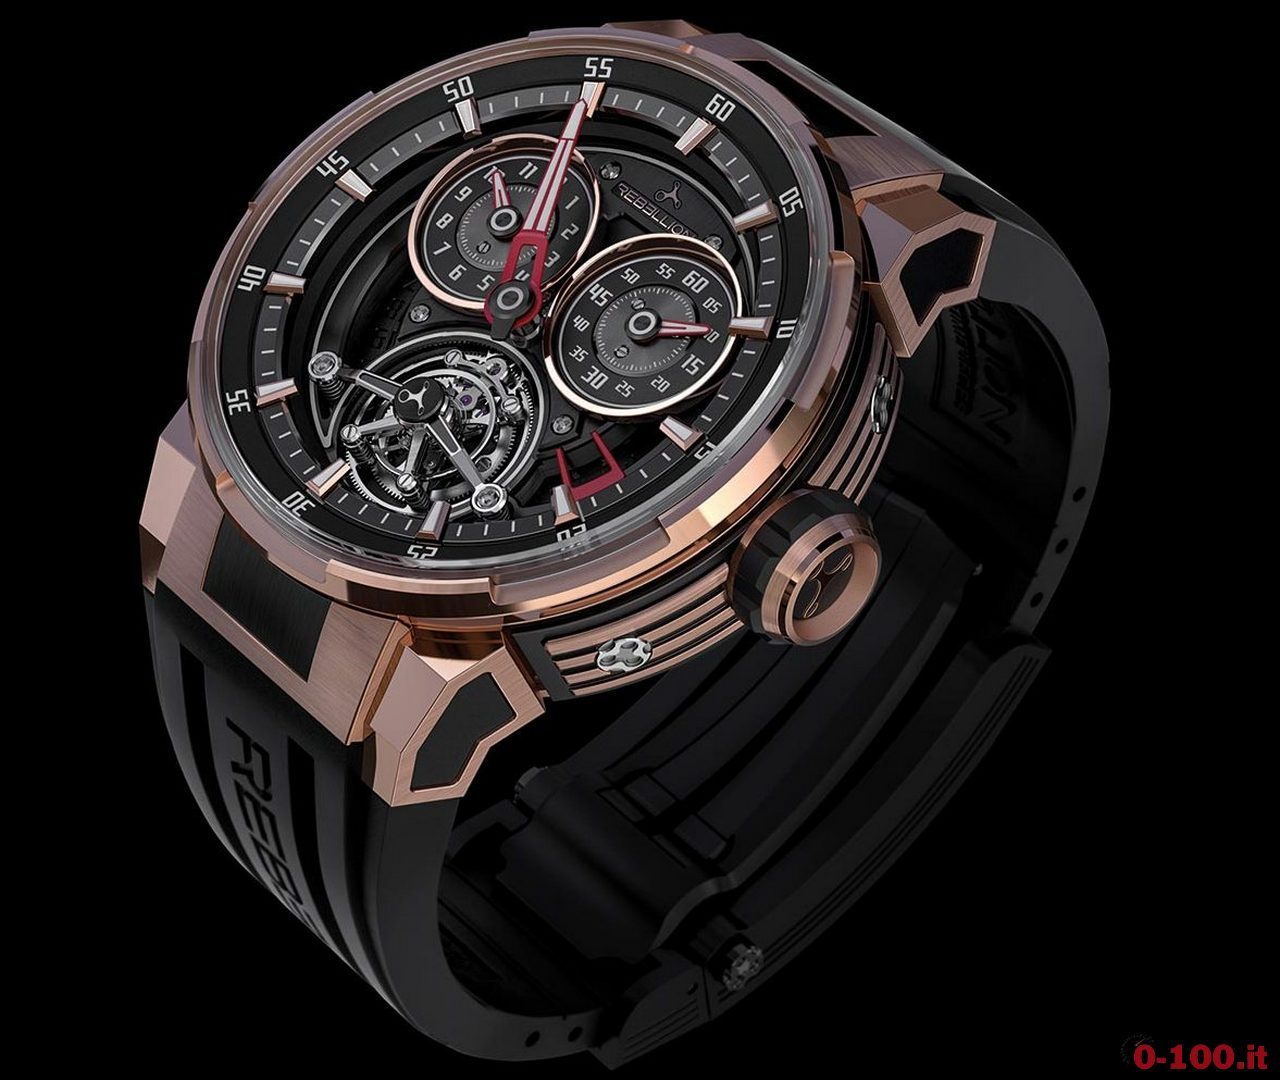 anteprima-baselworld-2017-rebellion-predator-2-0-regulator-tourbillon-limited-edition-prezzo-price_0-1001